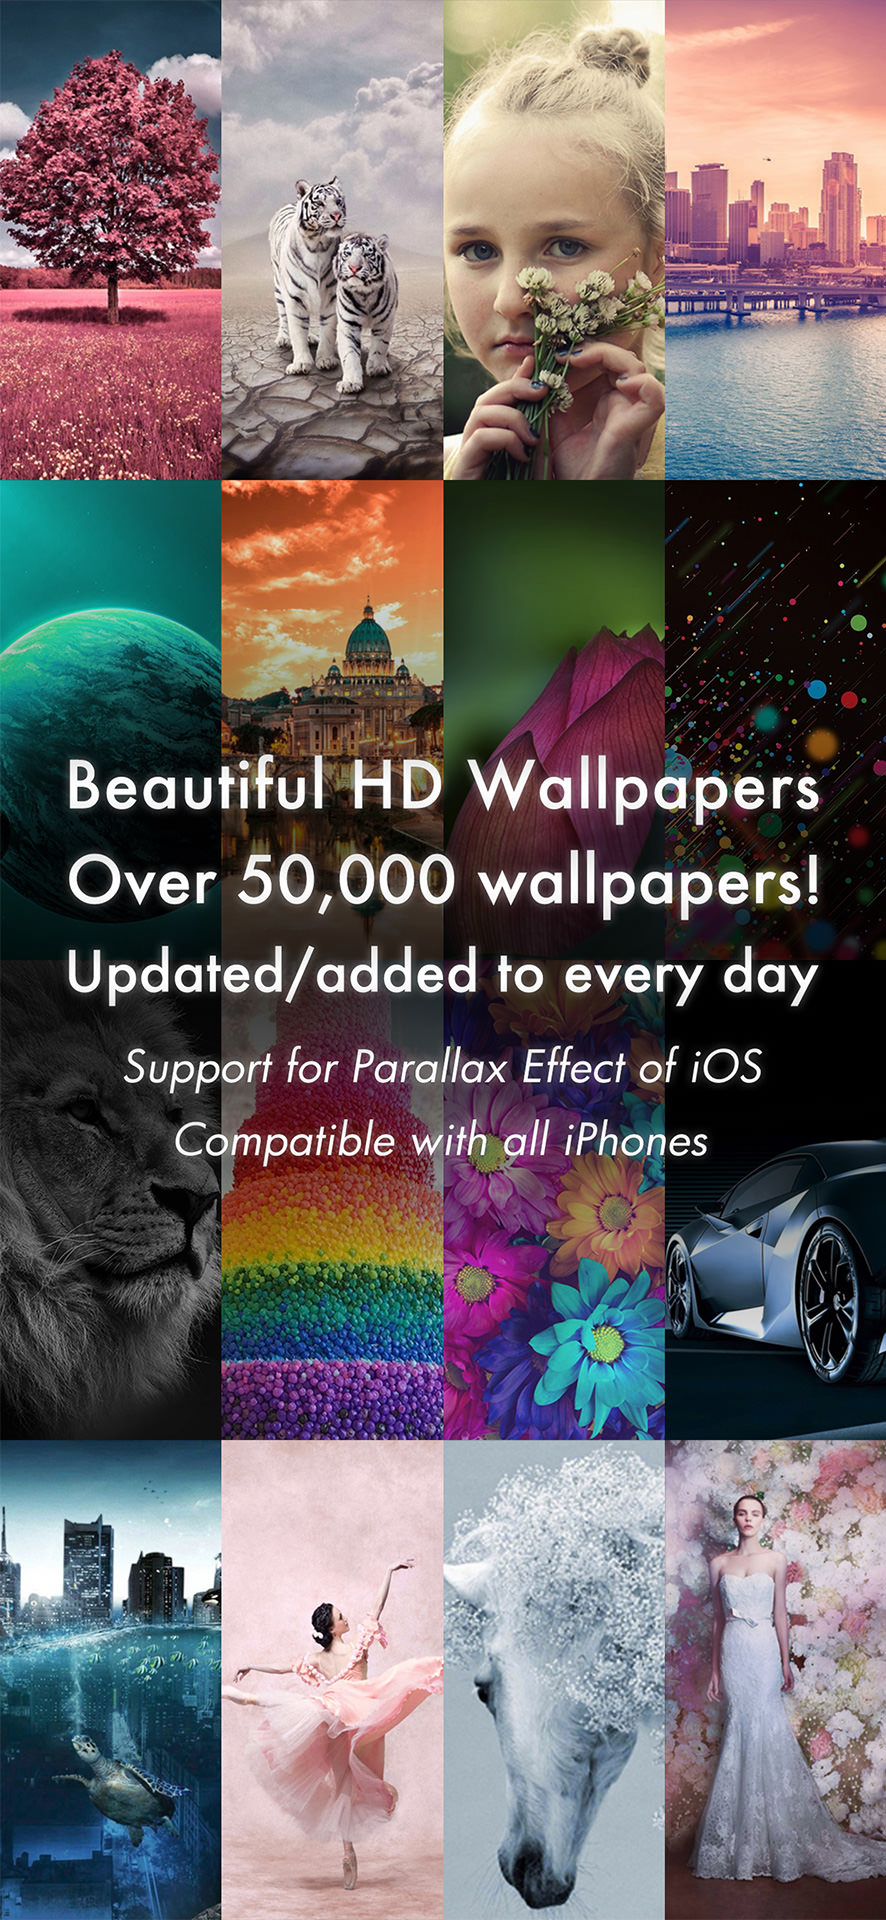 Beautiful Hd Wallpapers For Iphone 12 12 Mini 12 Pro 12 Pro Max Se Iphone Ipod App Dolice